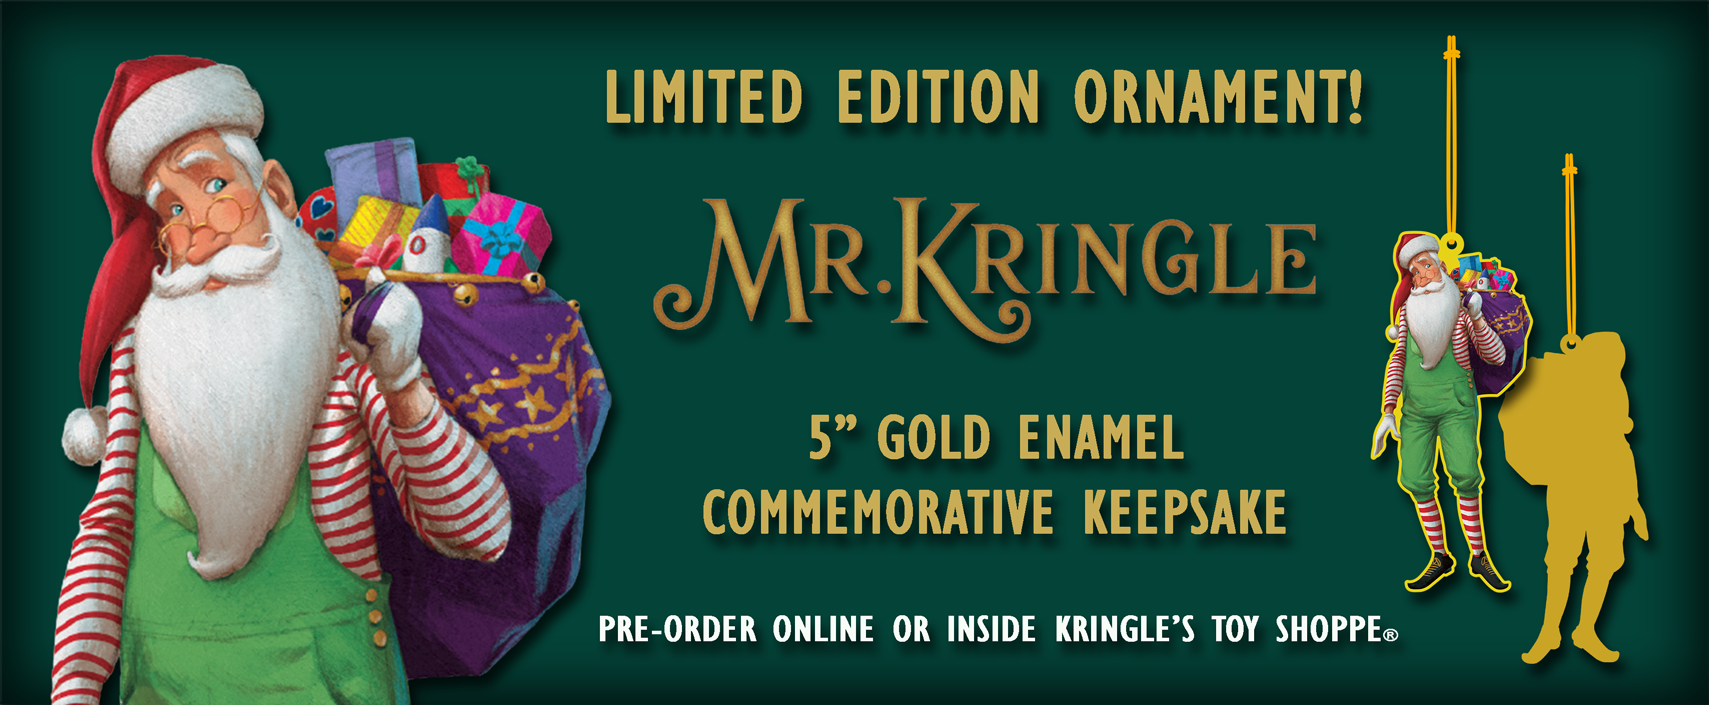 Pre-Order Your Mr. Kringle Ornament Online or purcpurchase inside Kringle's Toy Shoppe!